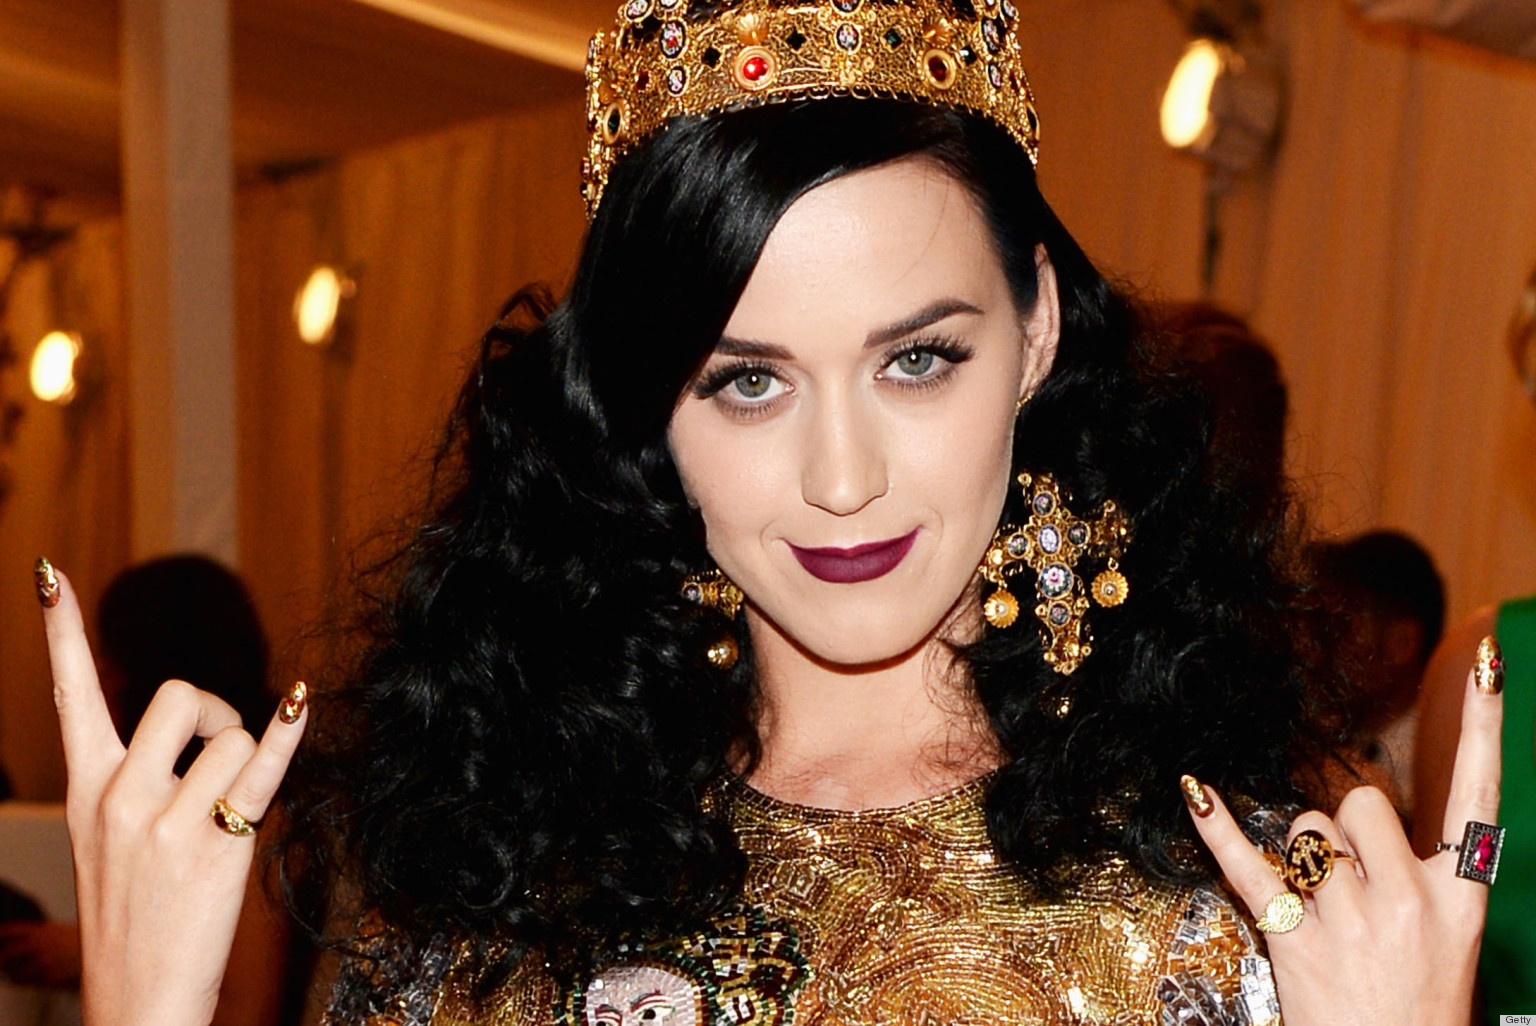 FINALLY: Katy Perry Covers American Vogue